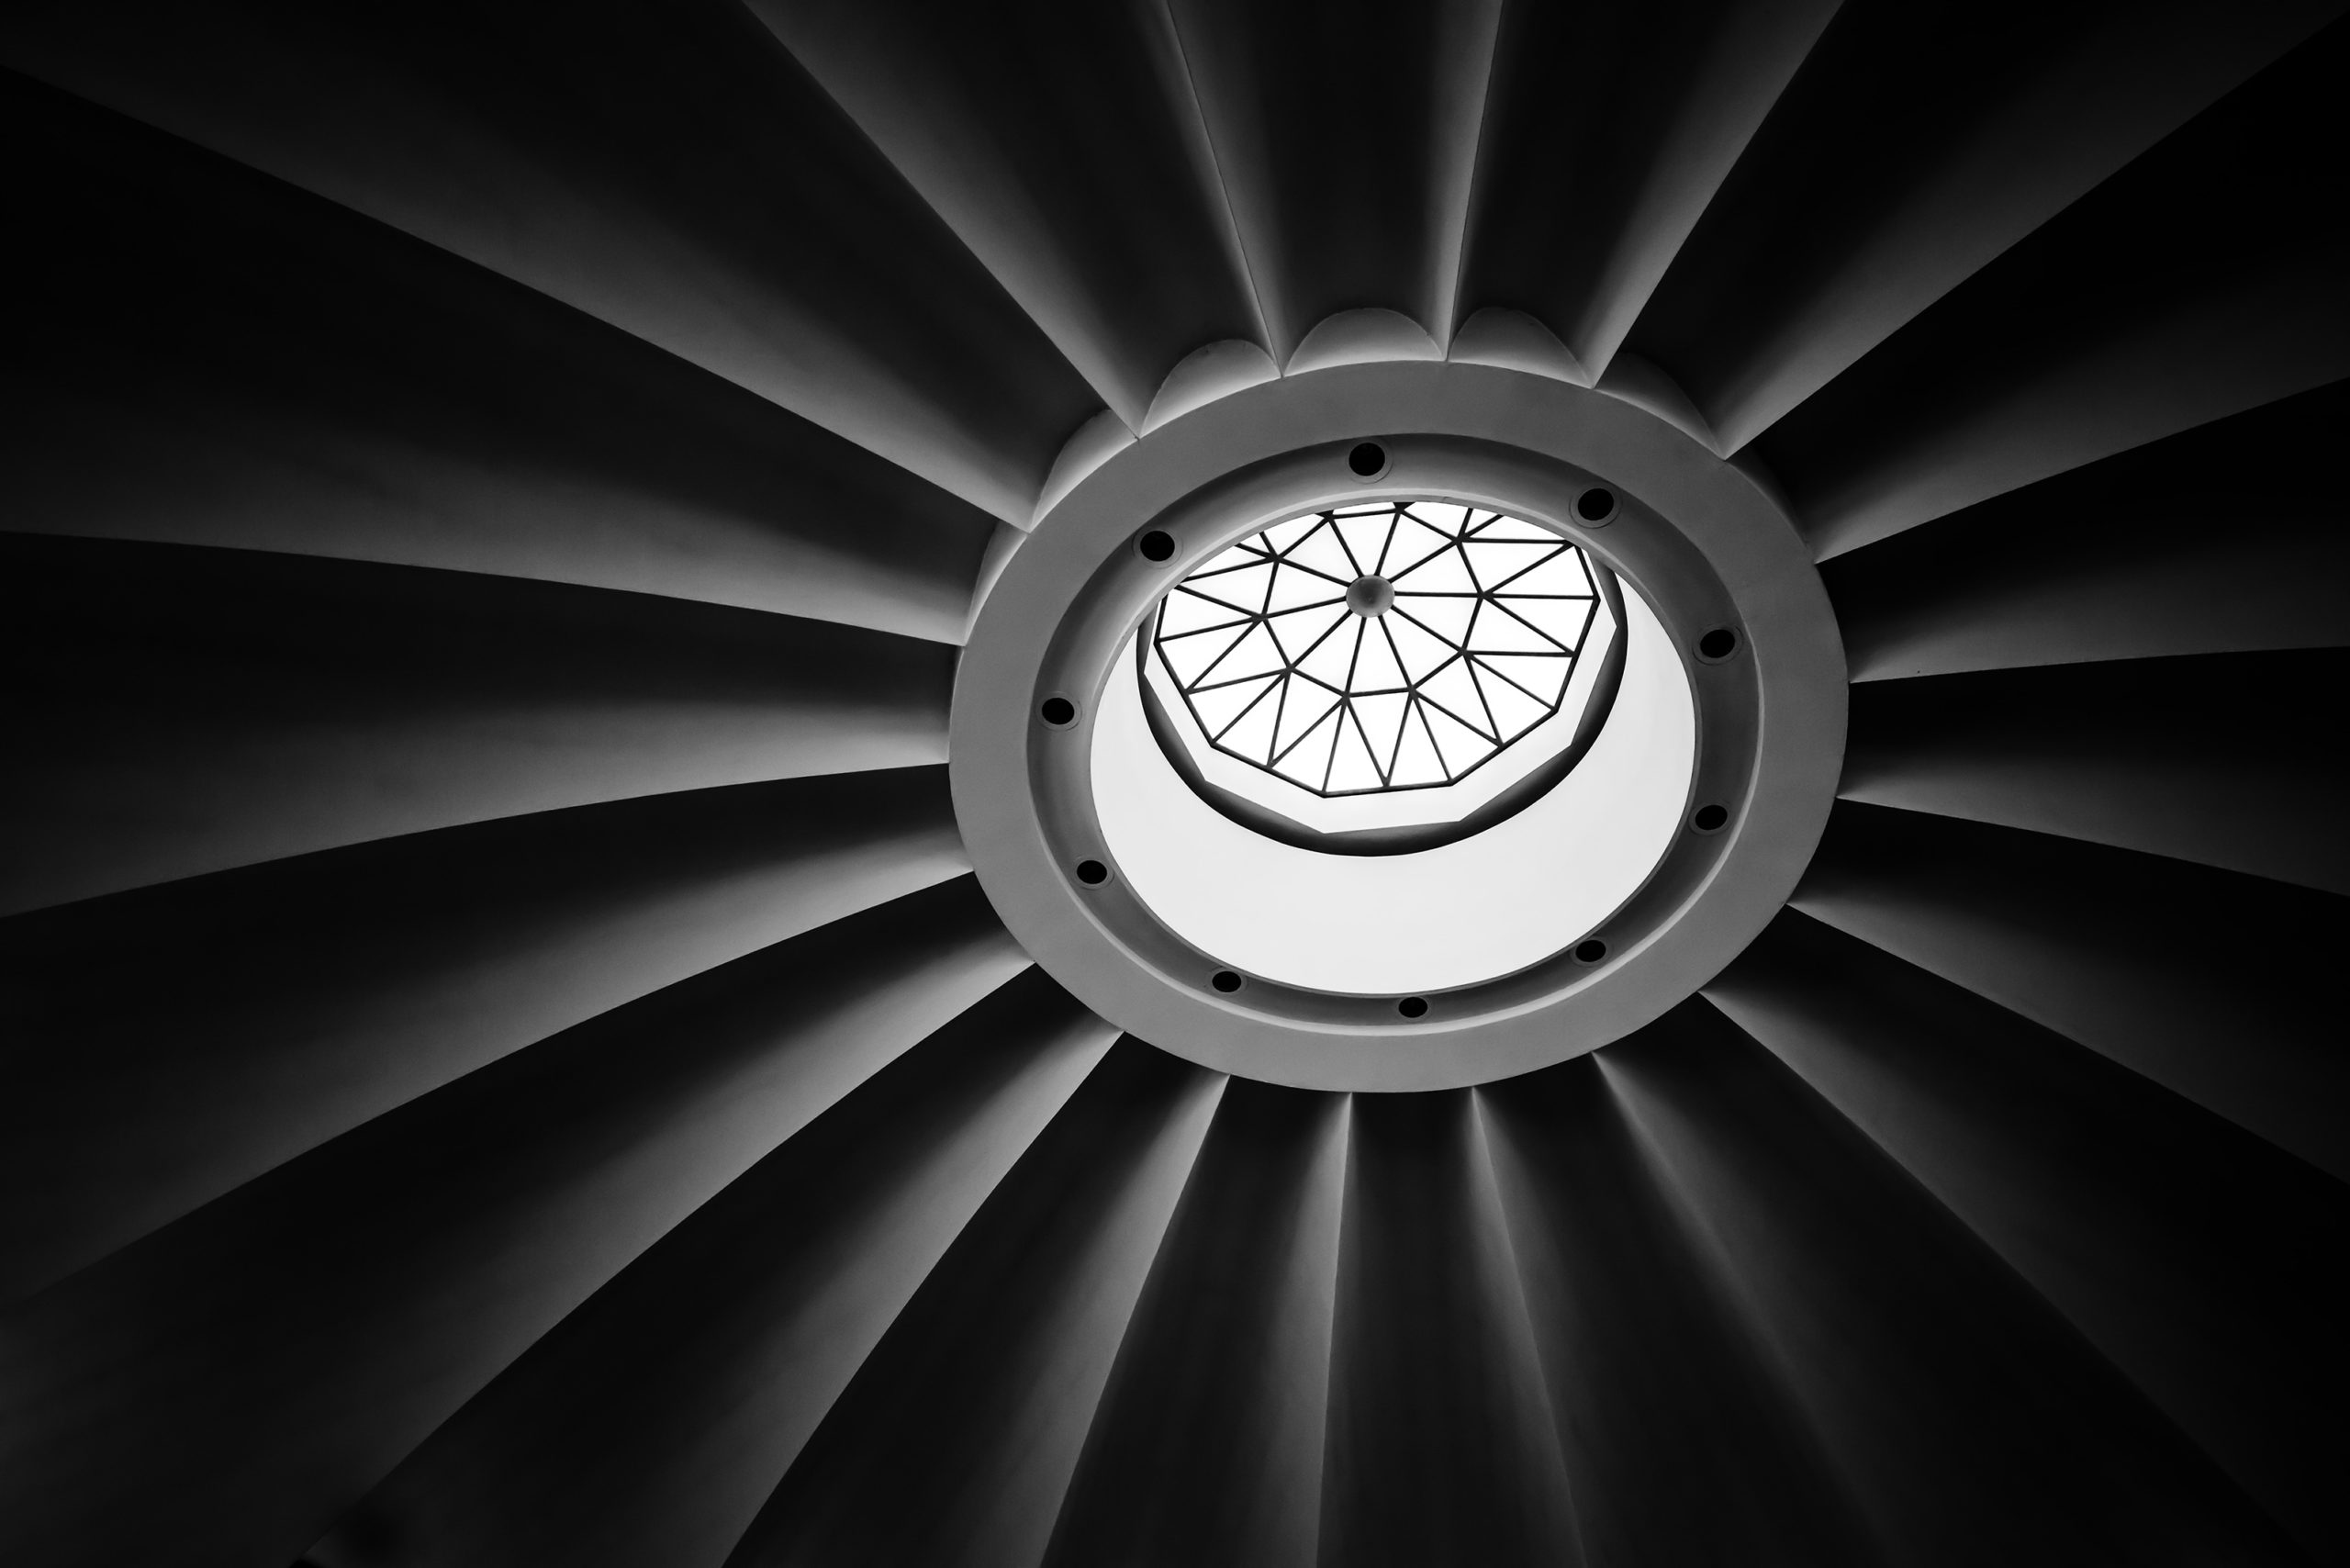 Black and white image under a dome.